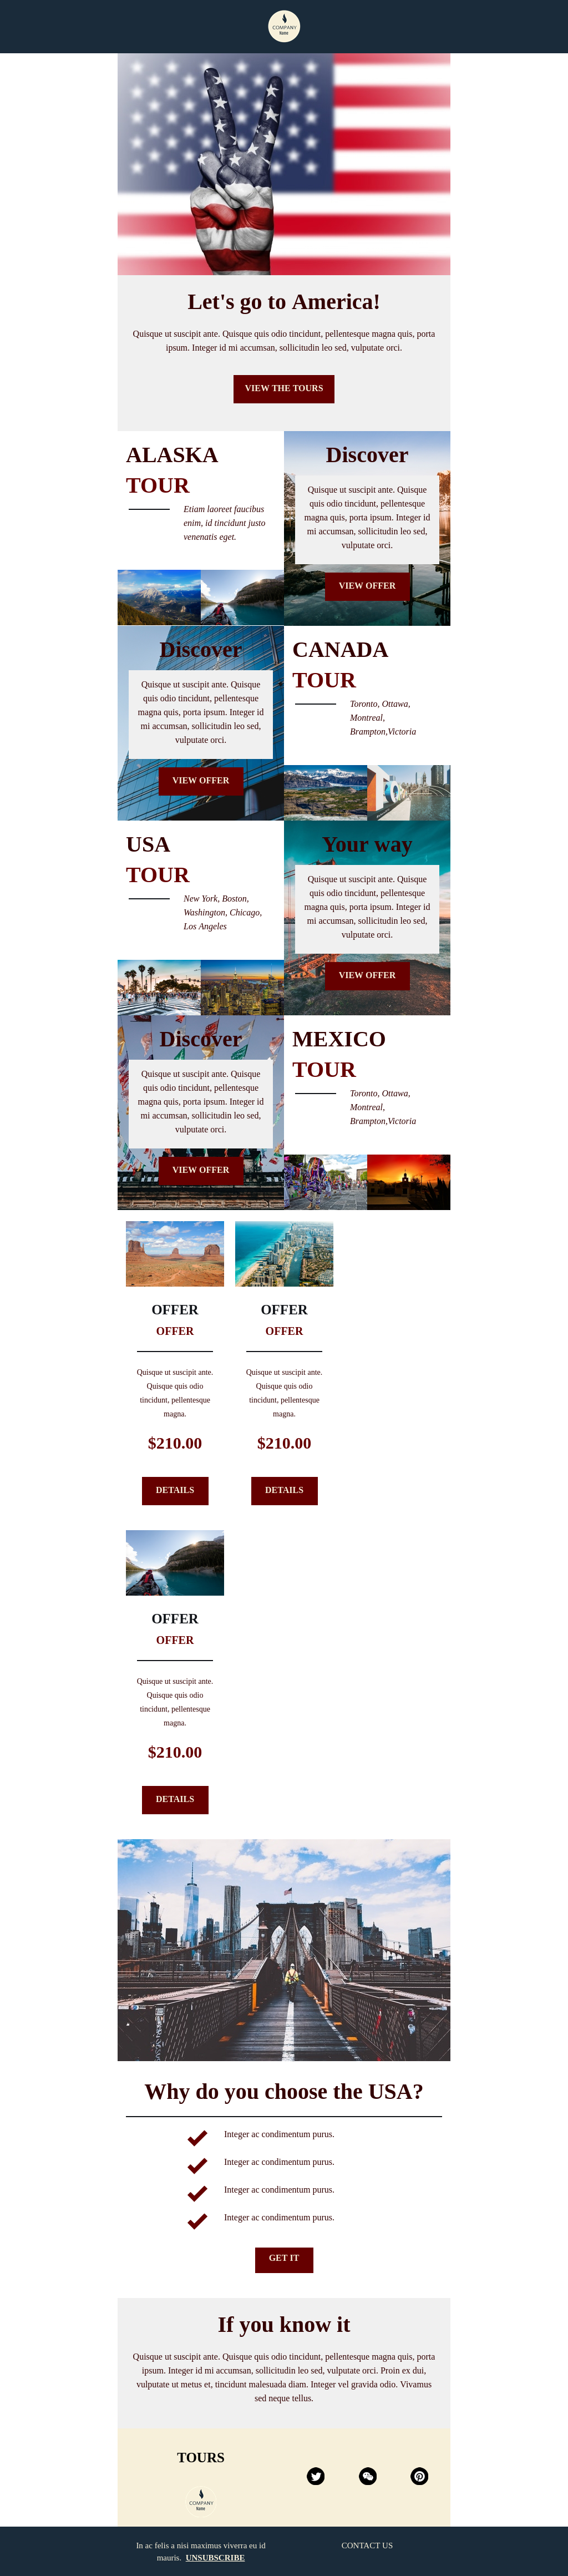 Let's Go to America Promotional Travel Template